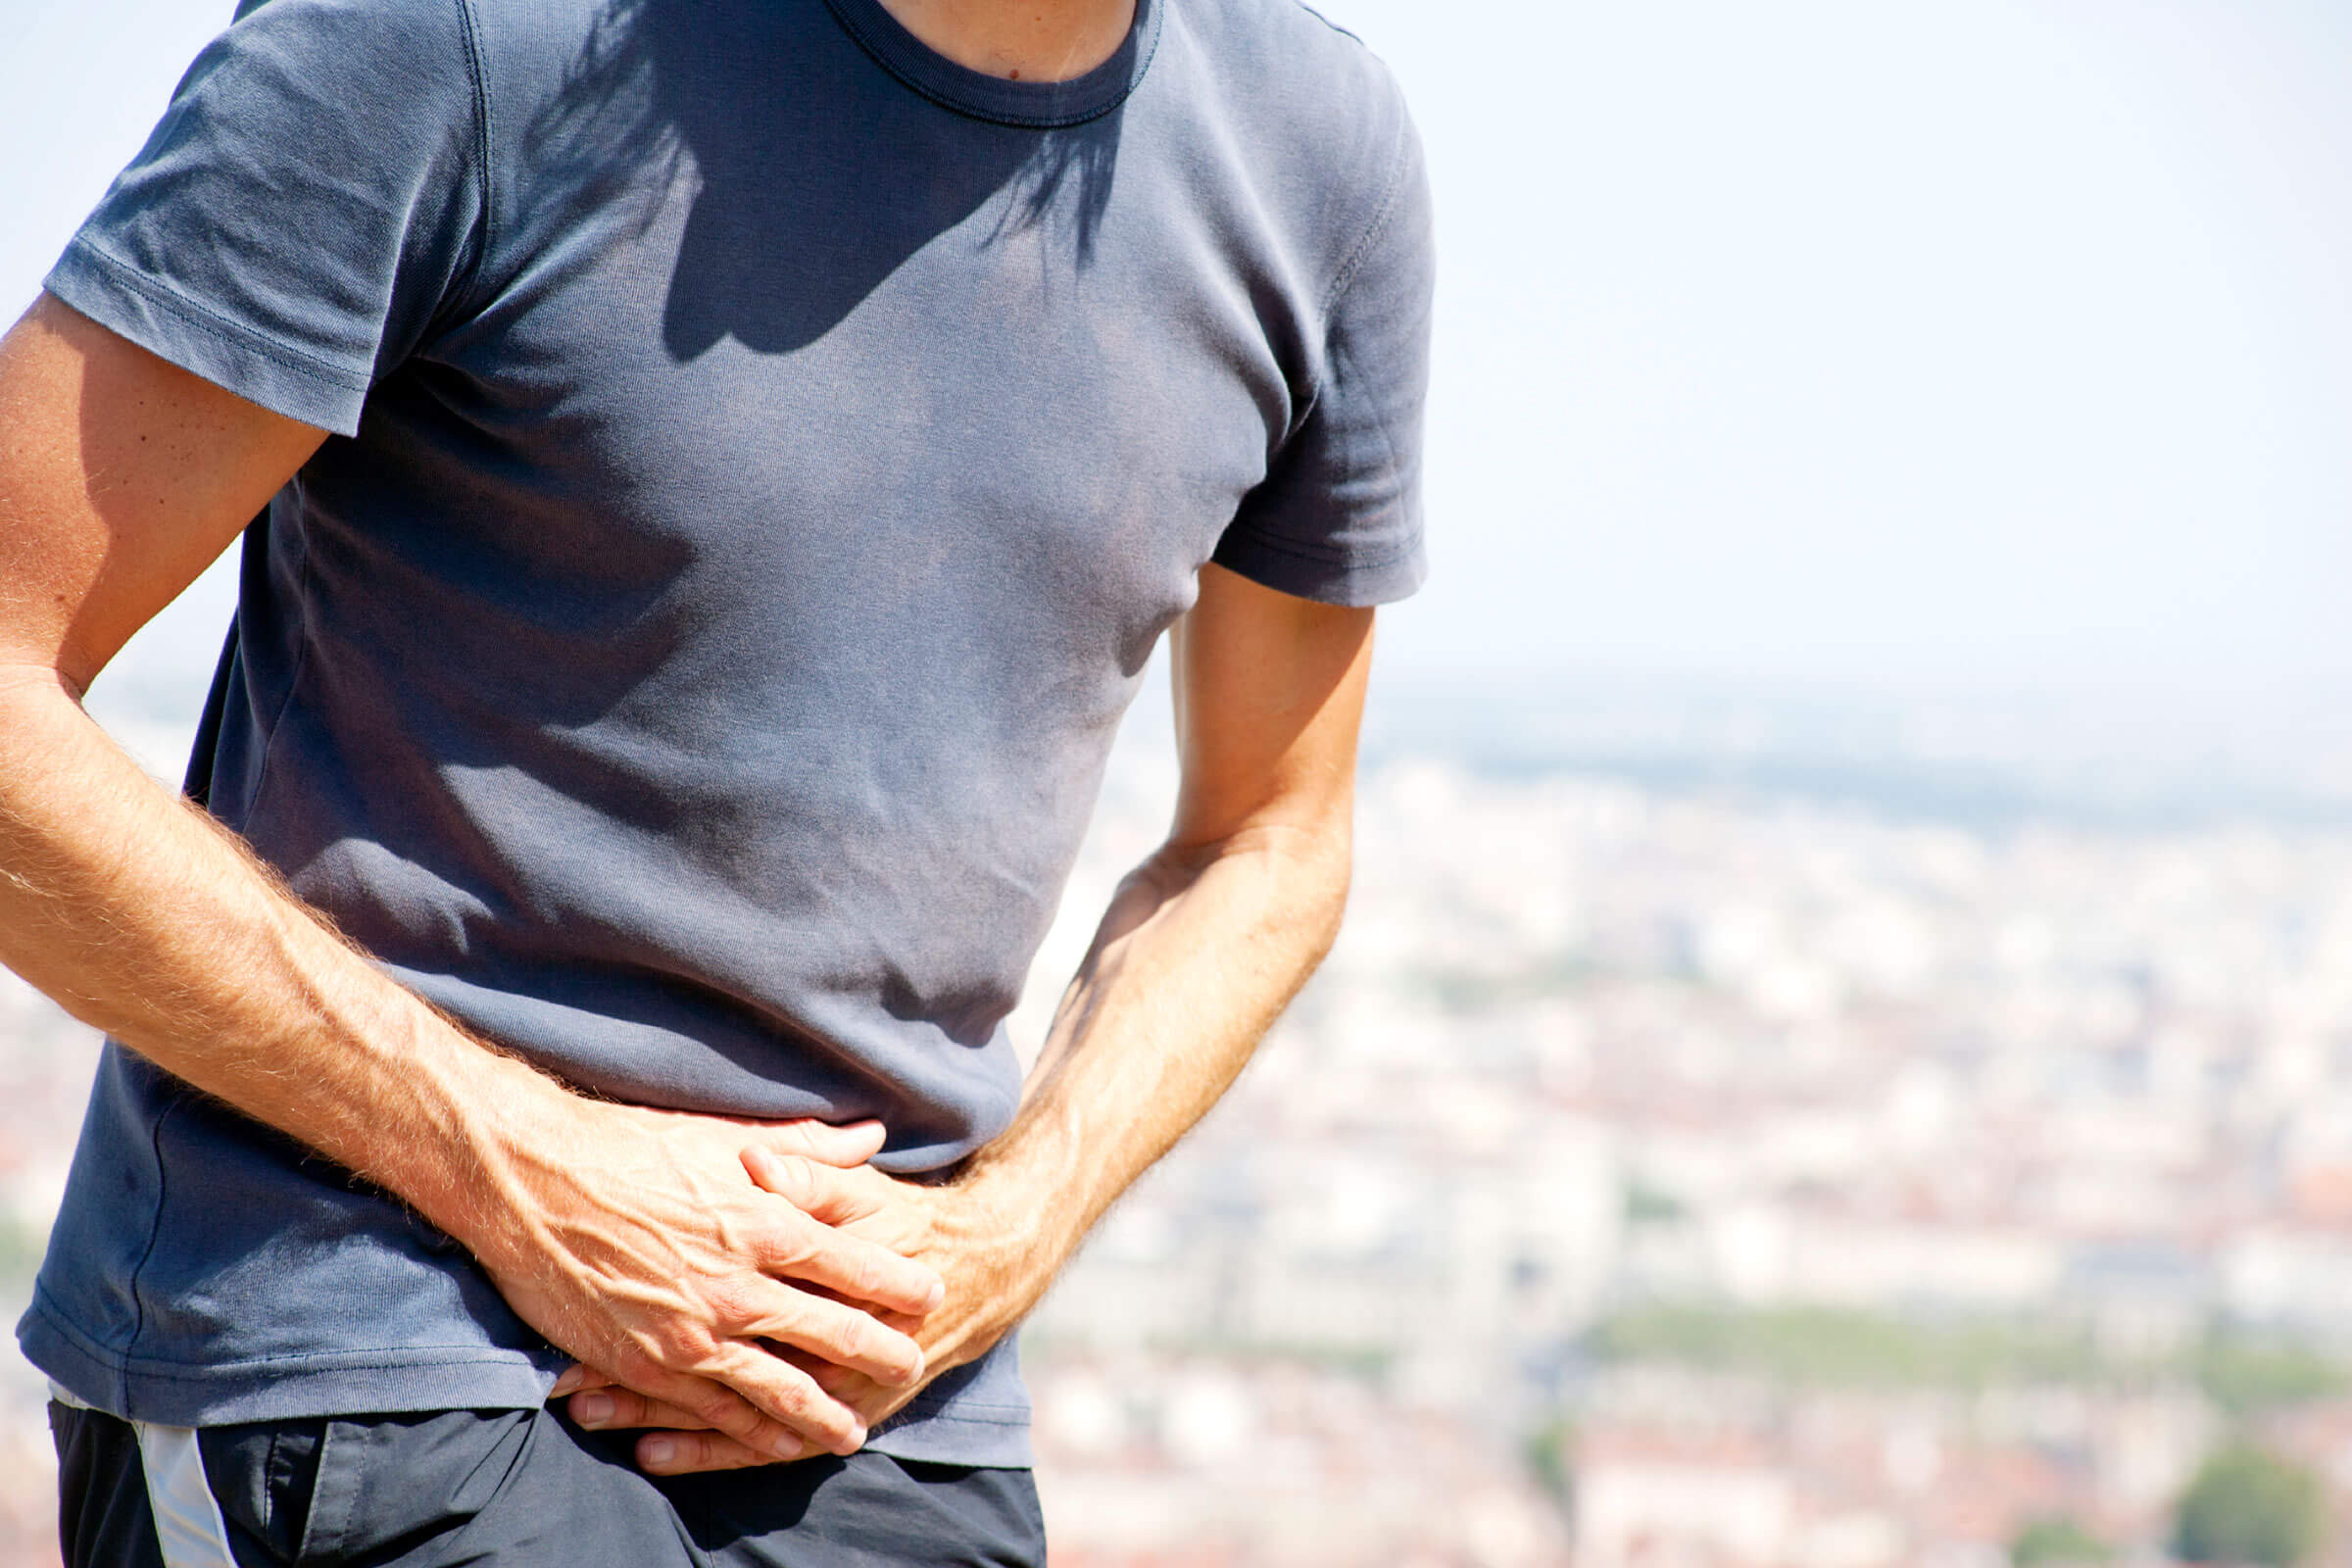 signs-of-prostate-cancer-difficulty-peeing